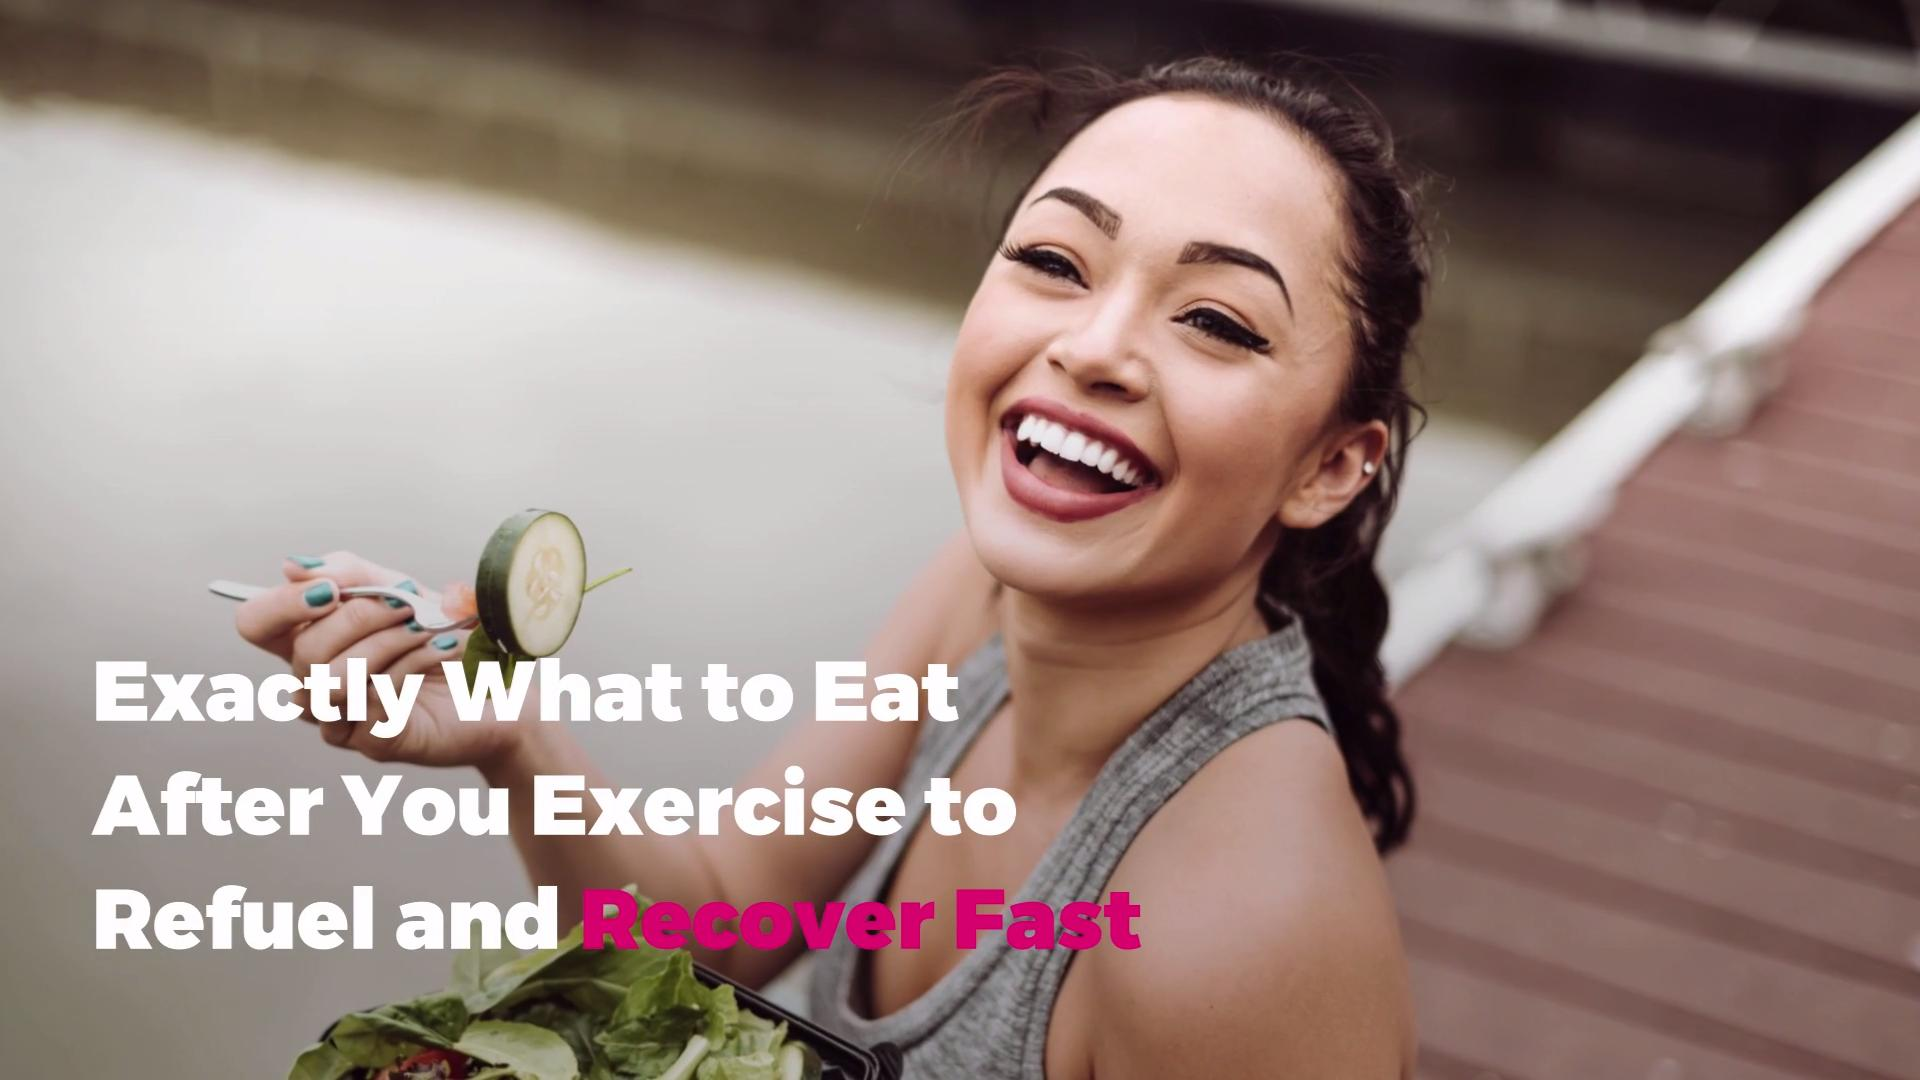 Exactly What to Eat After You Exercise to Refuel and Recover Fast